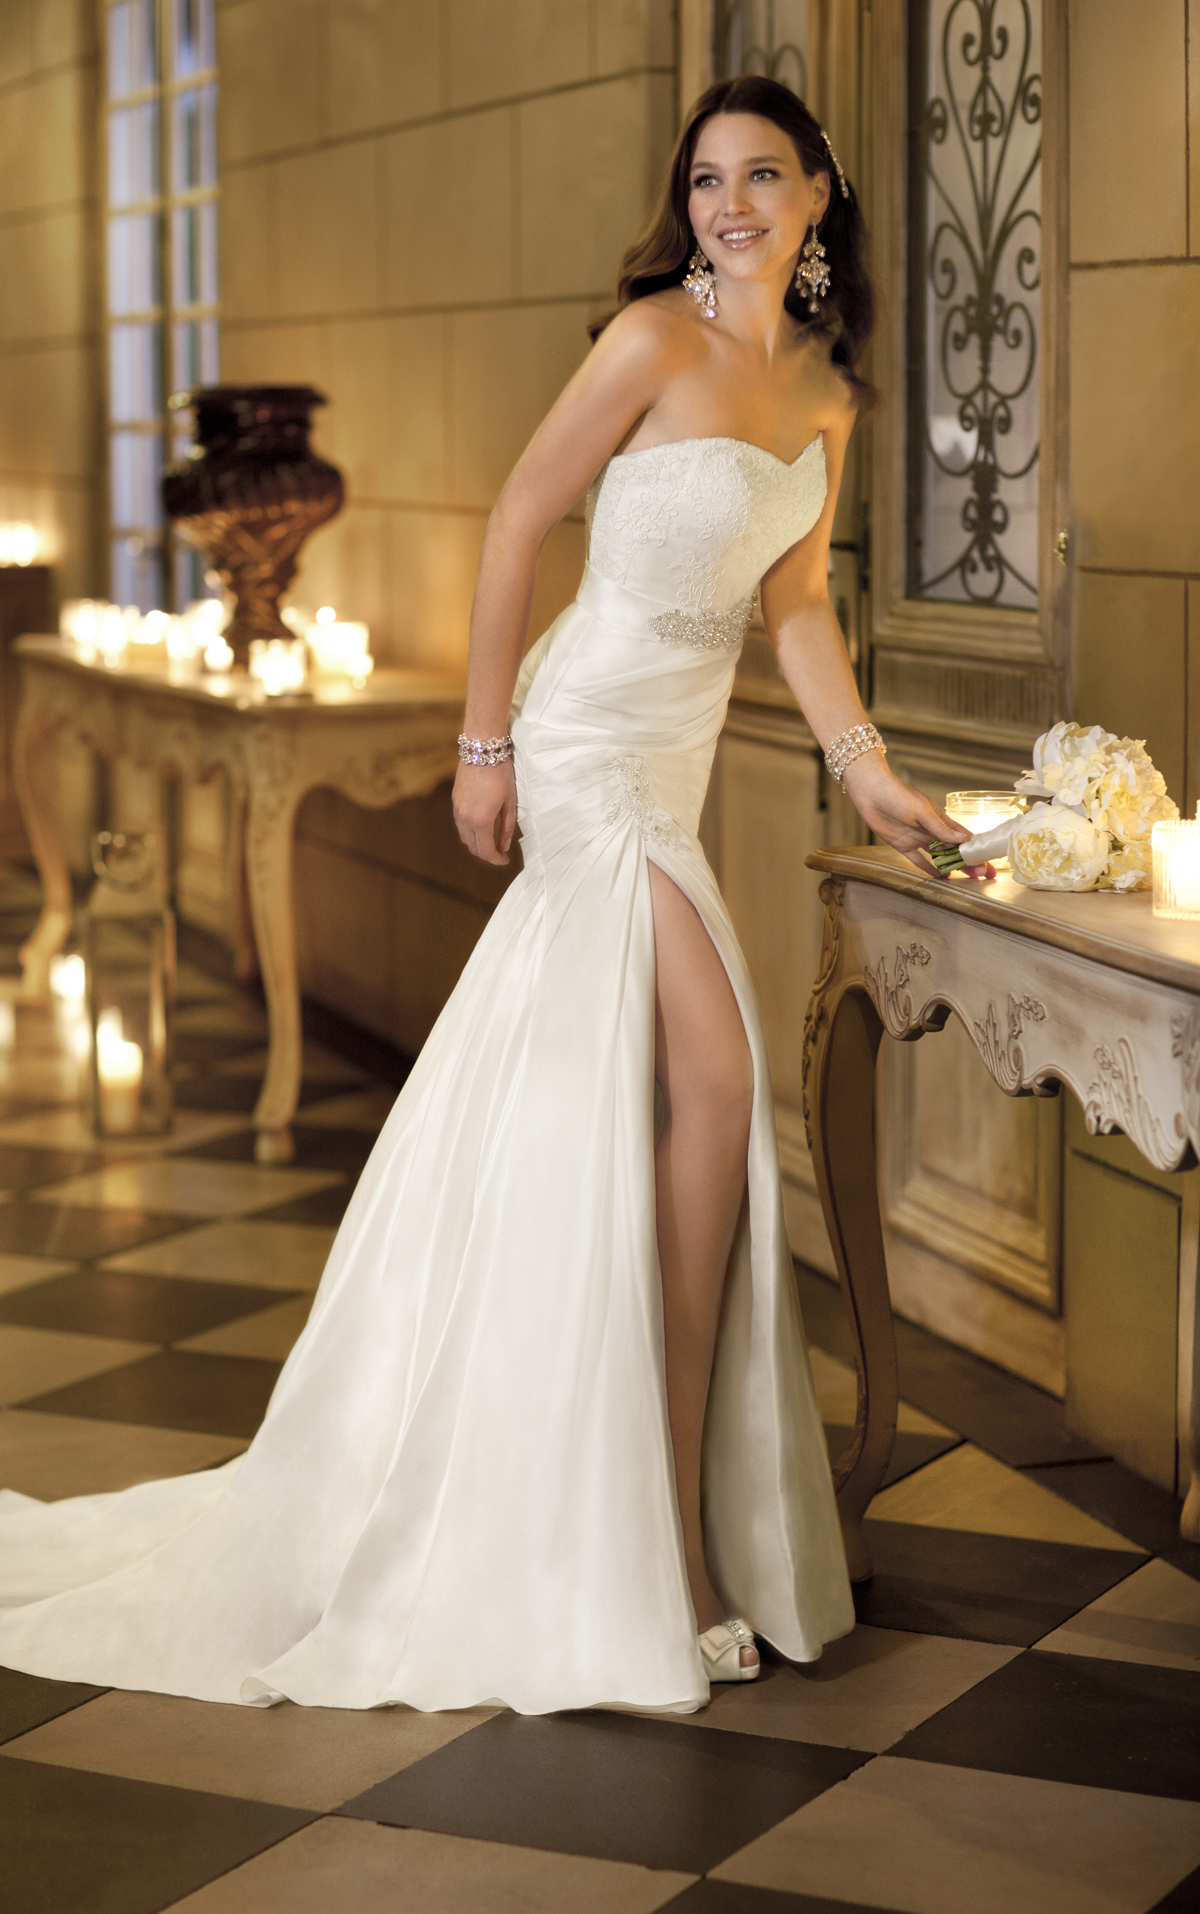 The best gowns from the most in demand wedding dress designers a stella york wedding dress is more than just a designer label its an indelible mind set with each creation a perfect complement to a brides attitude ombrellifo Images